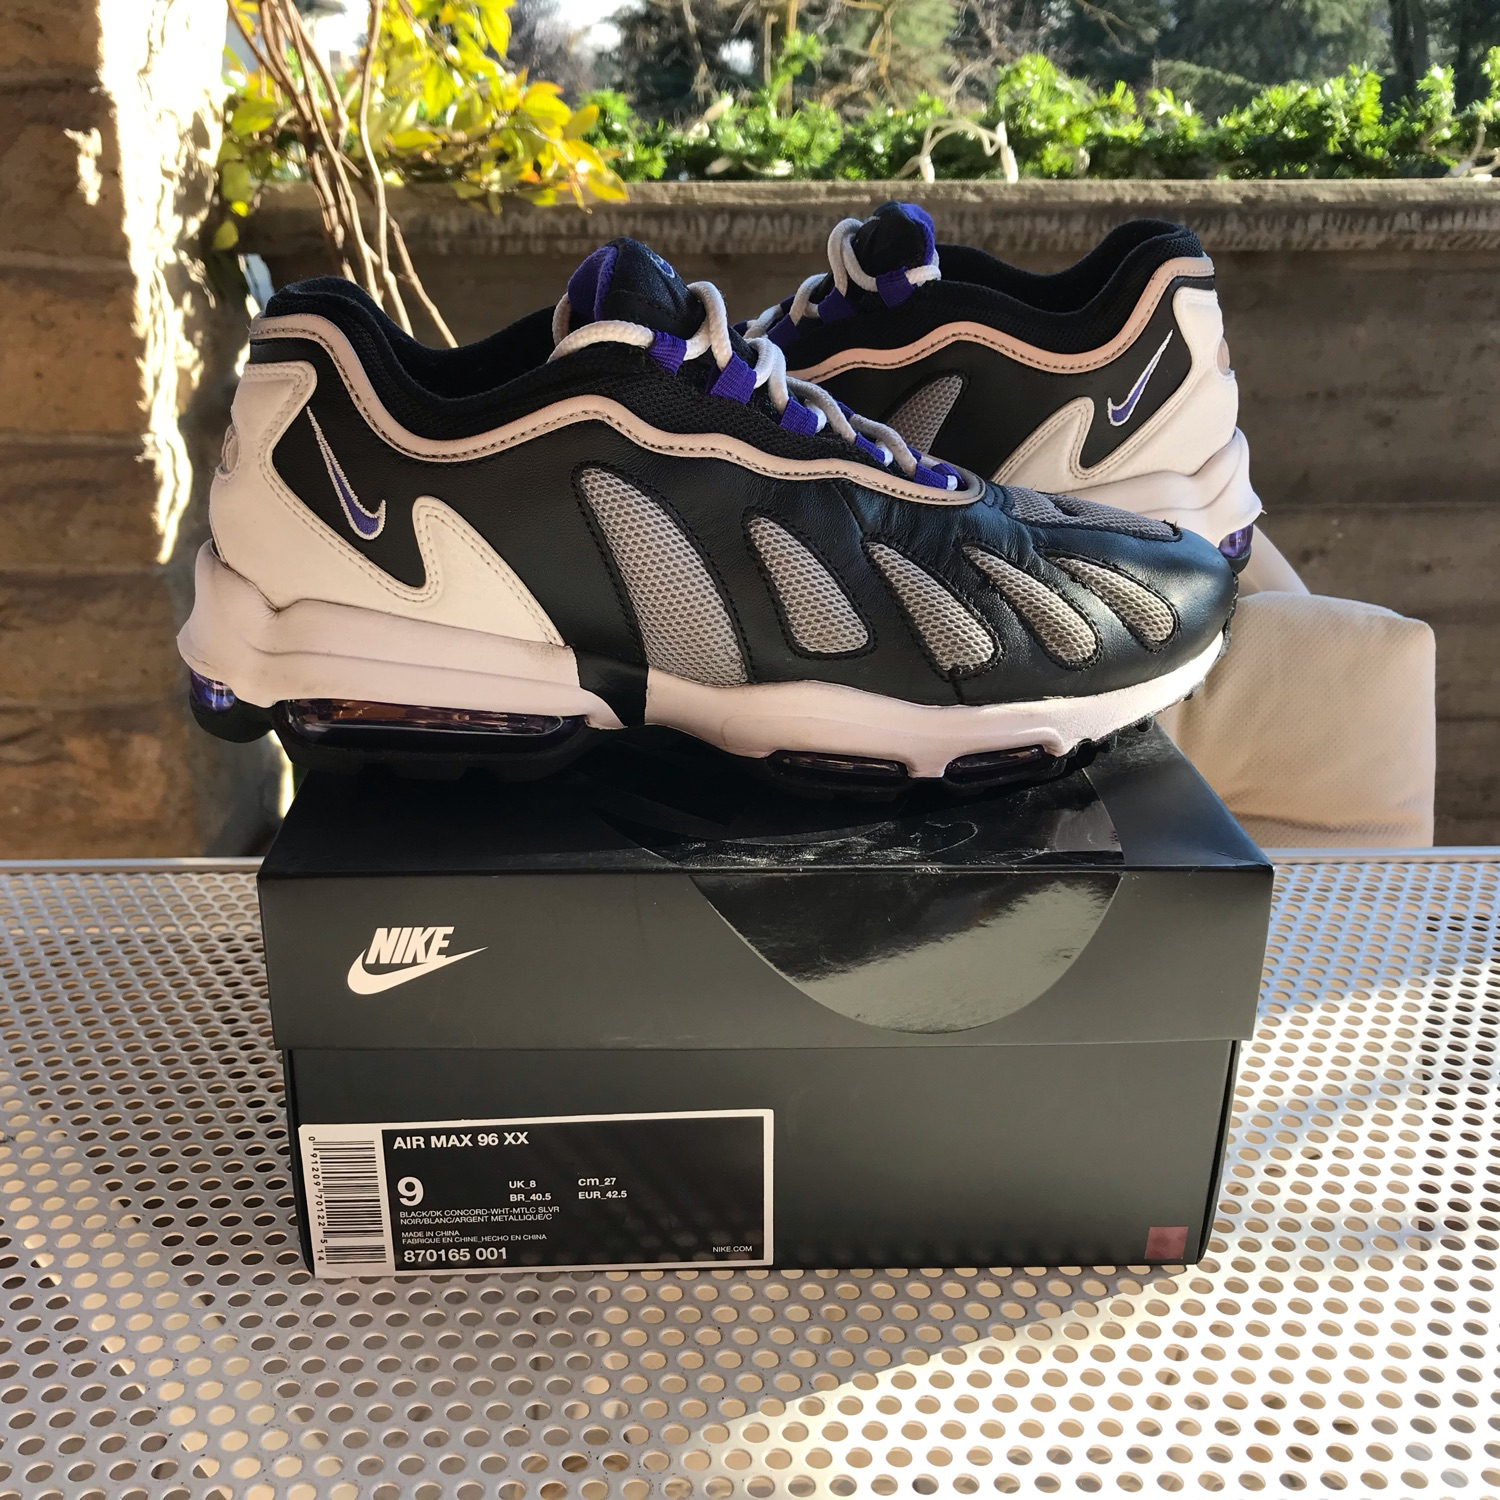 new arrival bc205 2c658 Air Max 96 Xx Off White Yeezy Parra Patta